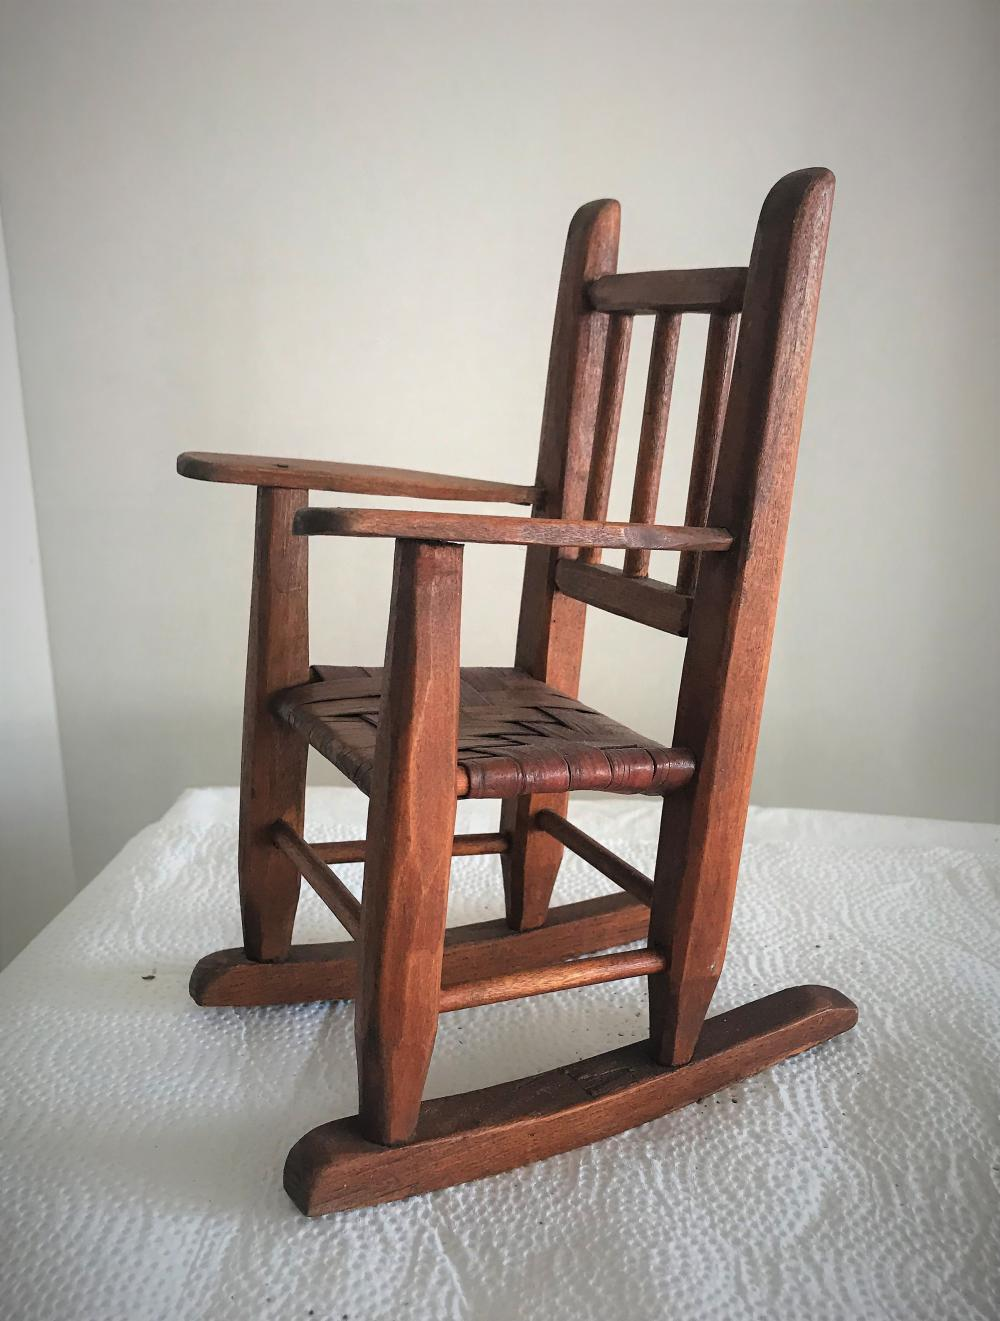 Antique Doll House Rocking Chair - Miniature Dollhouse Furniture For Sale At Online Auction BID NOW